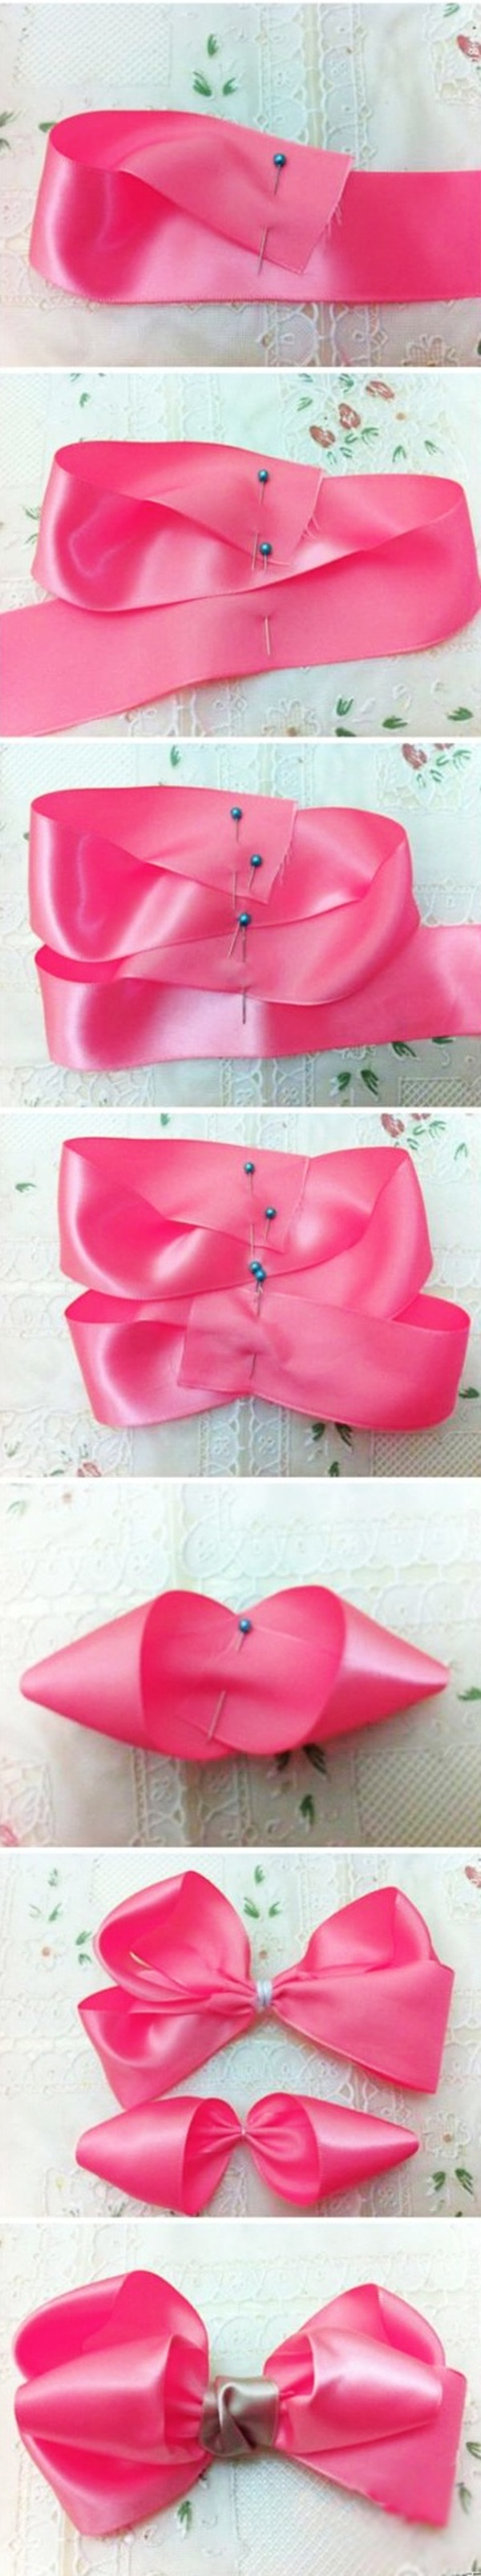 Different Ways to Use Ribbons 2